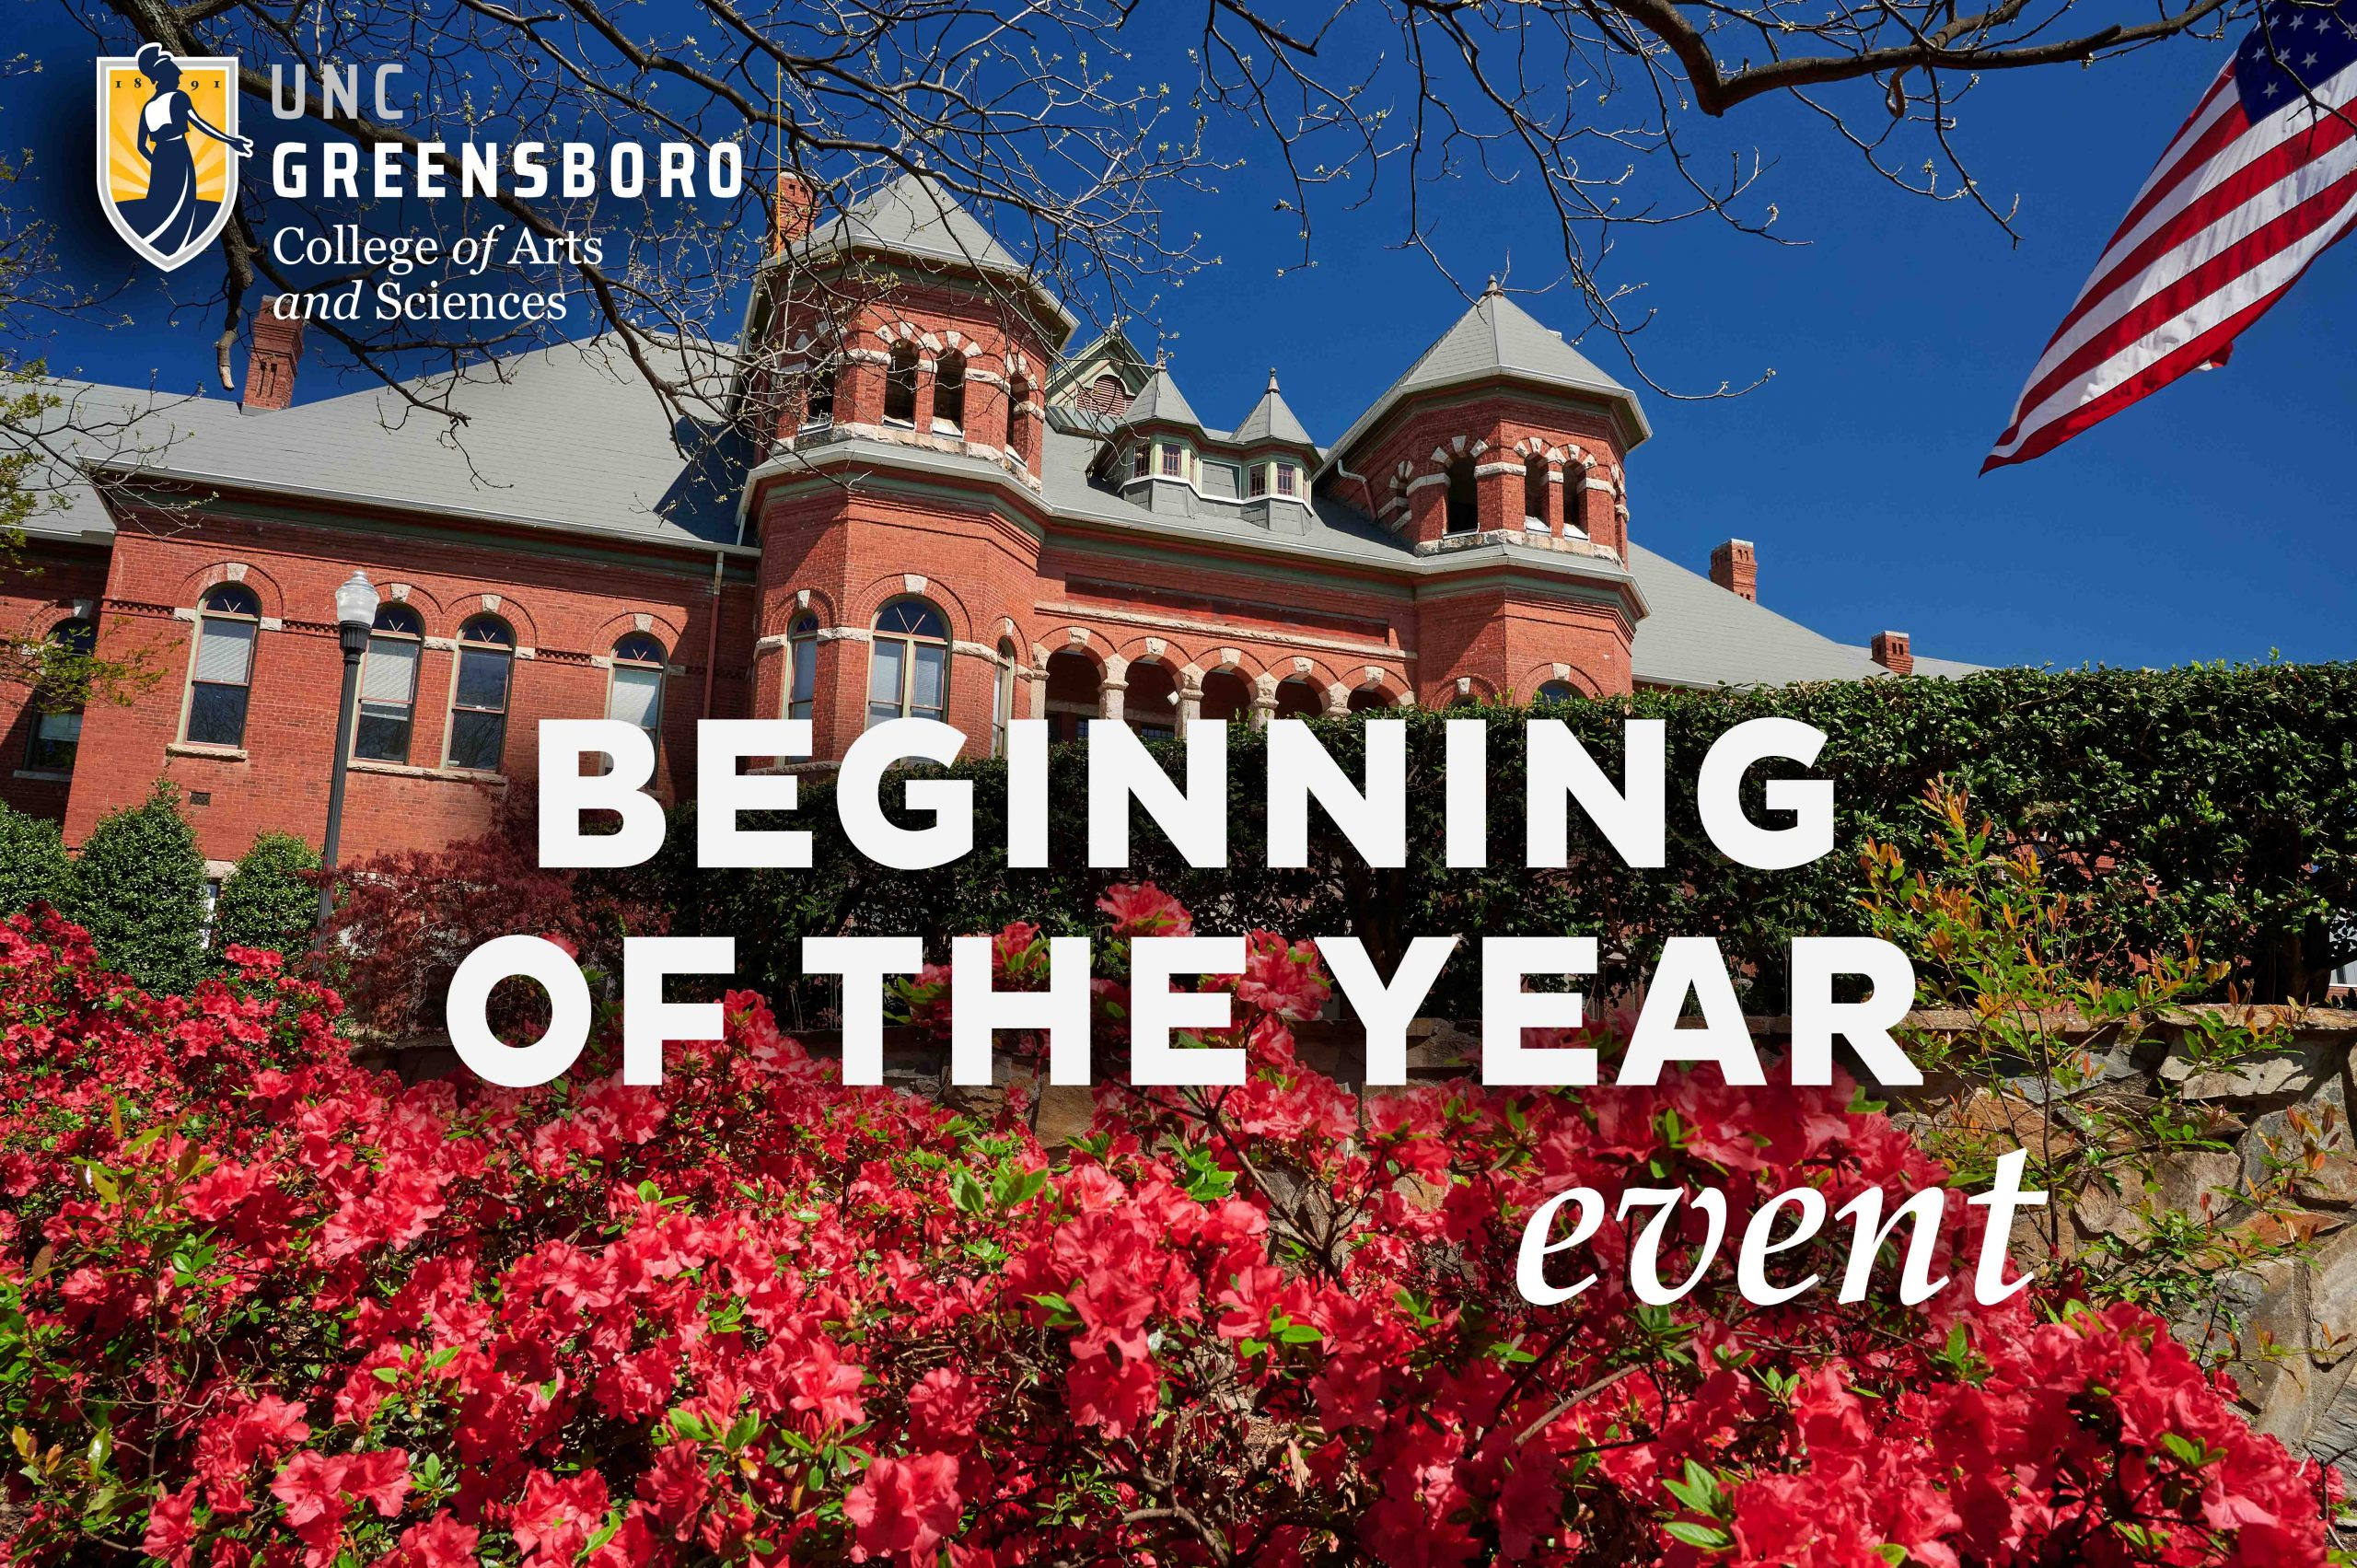 Image of text saying Beginning of the Year Event over image of Foust Building